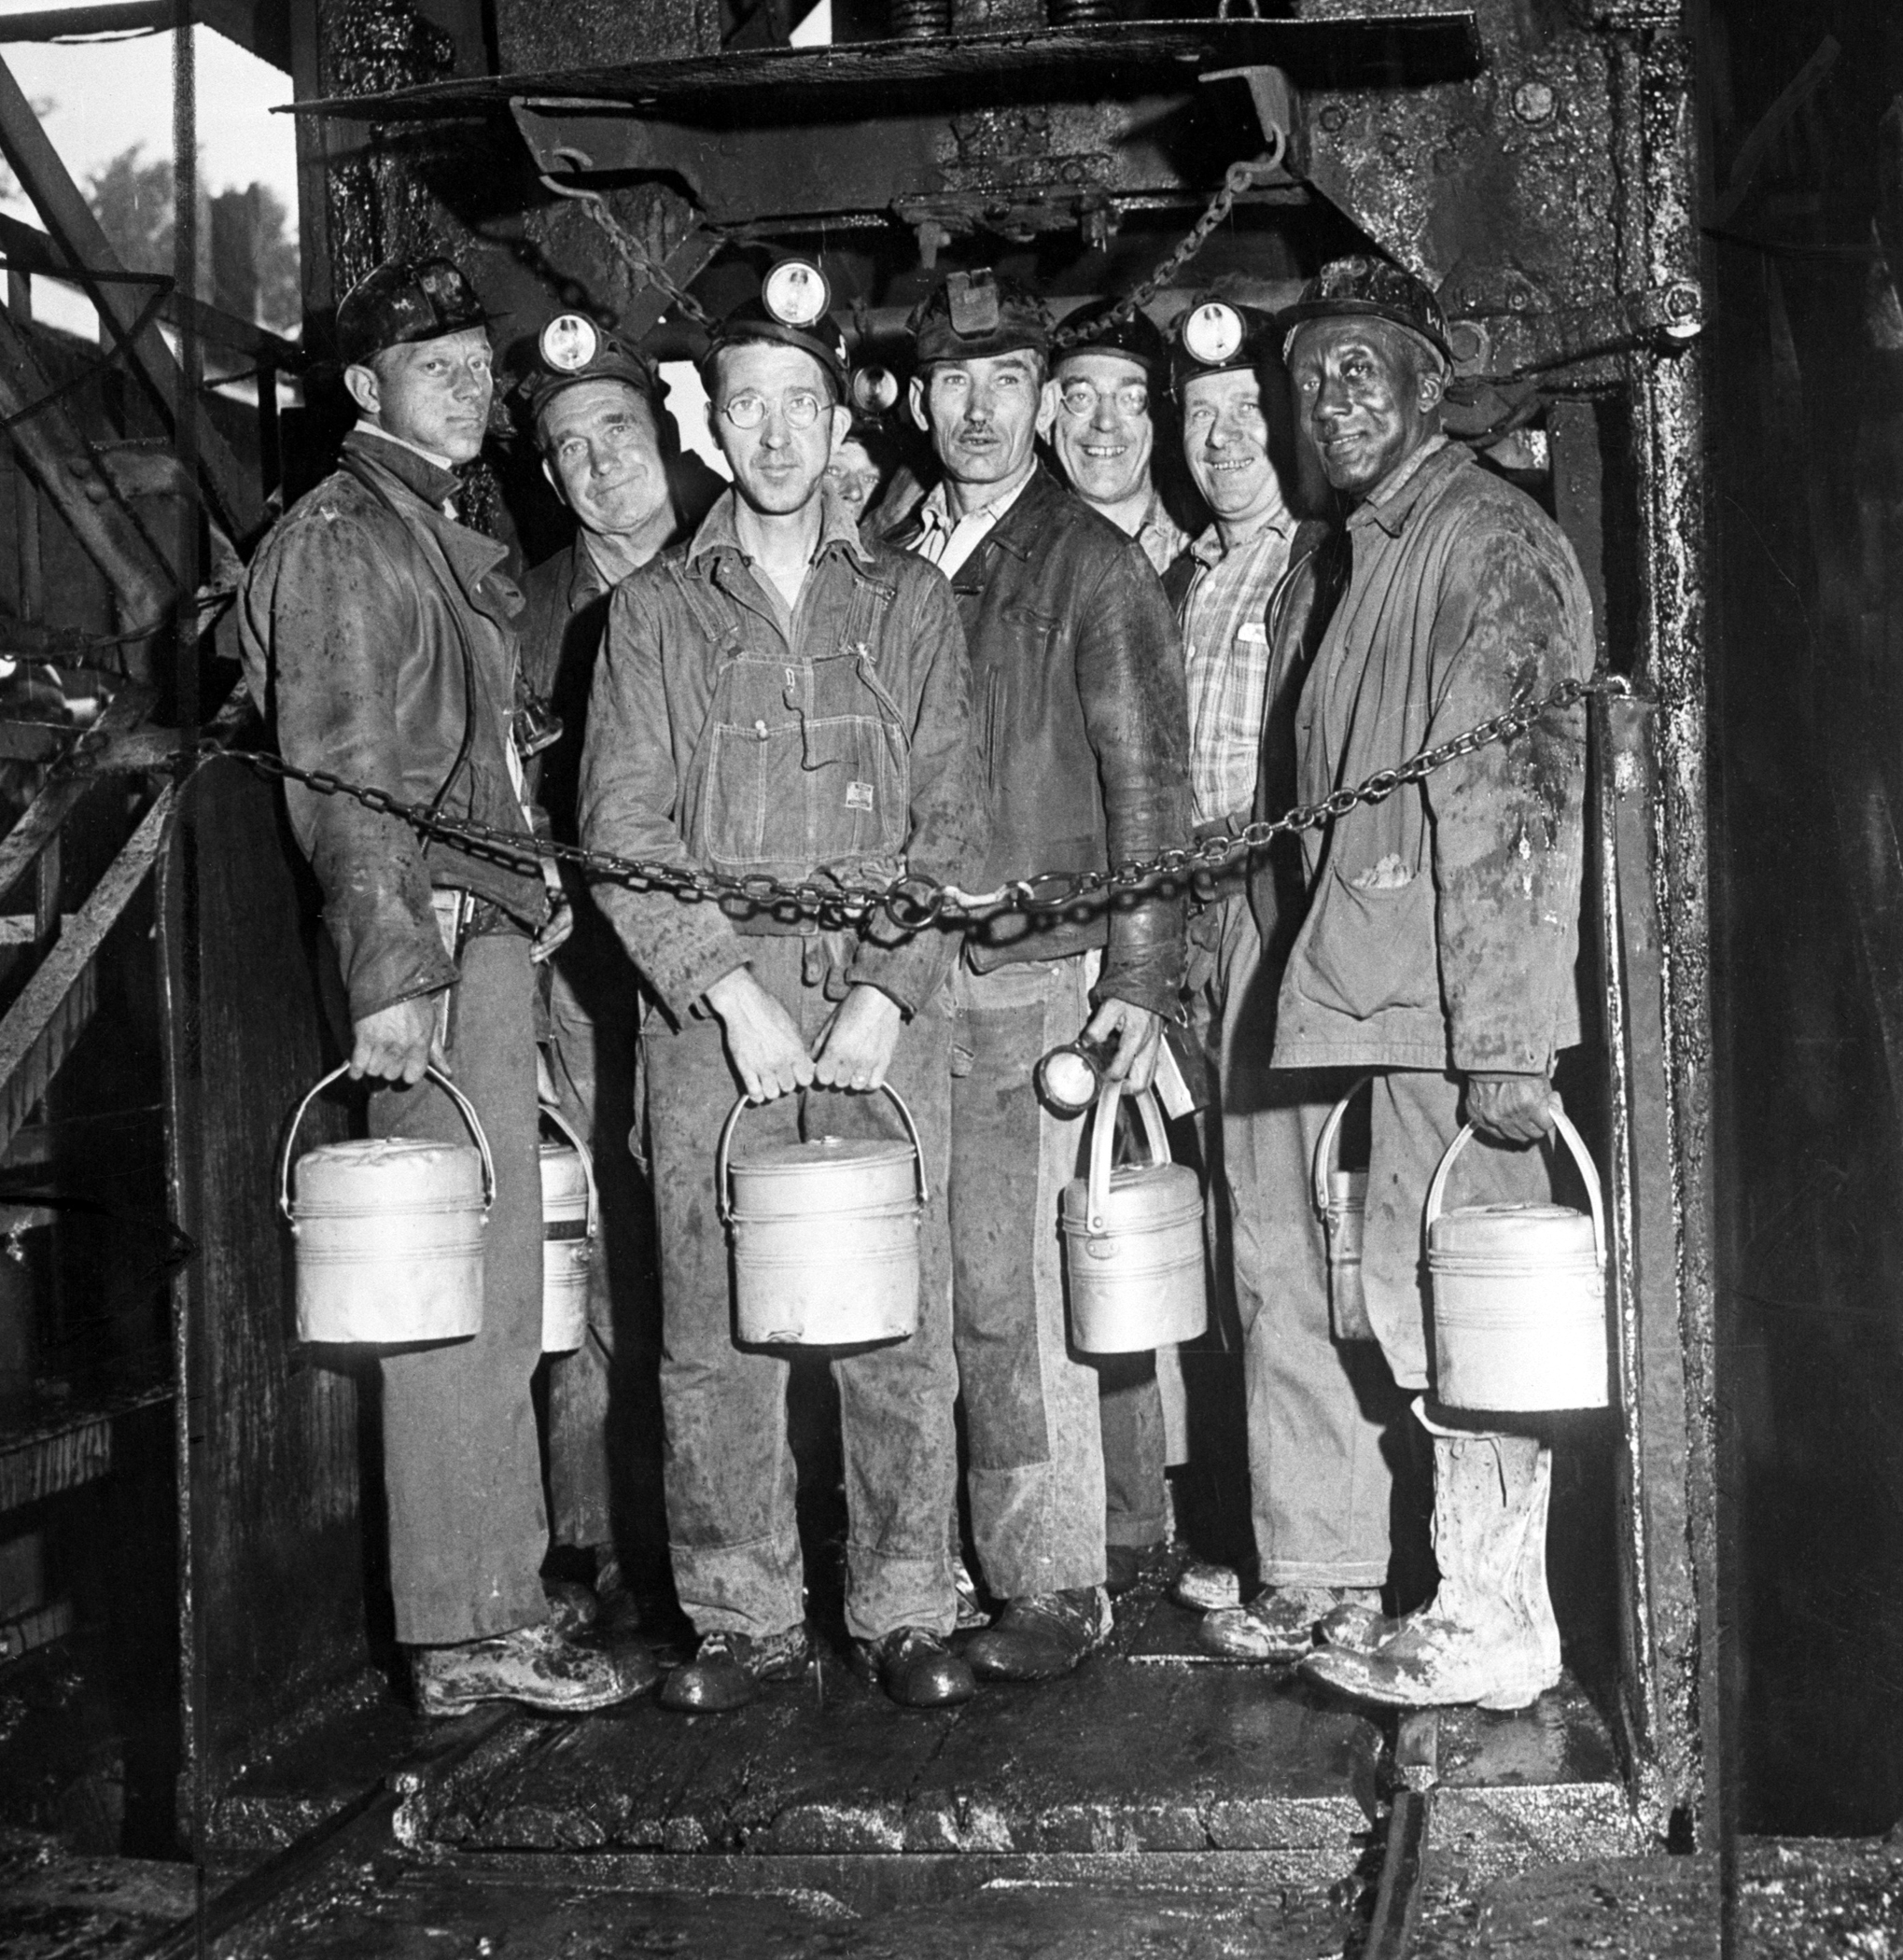 How Was Factory Life During the Industrial Revolution?